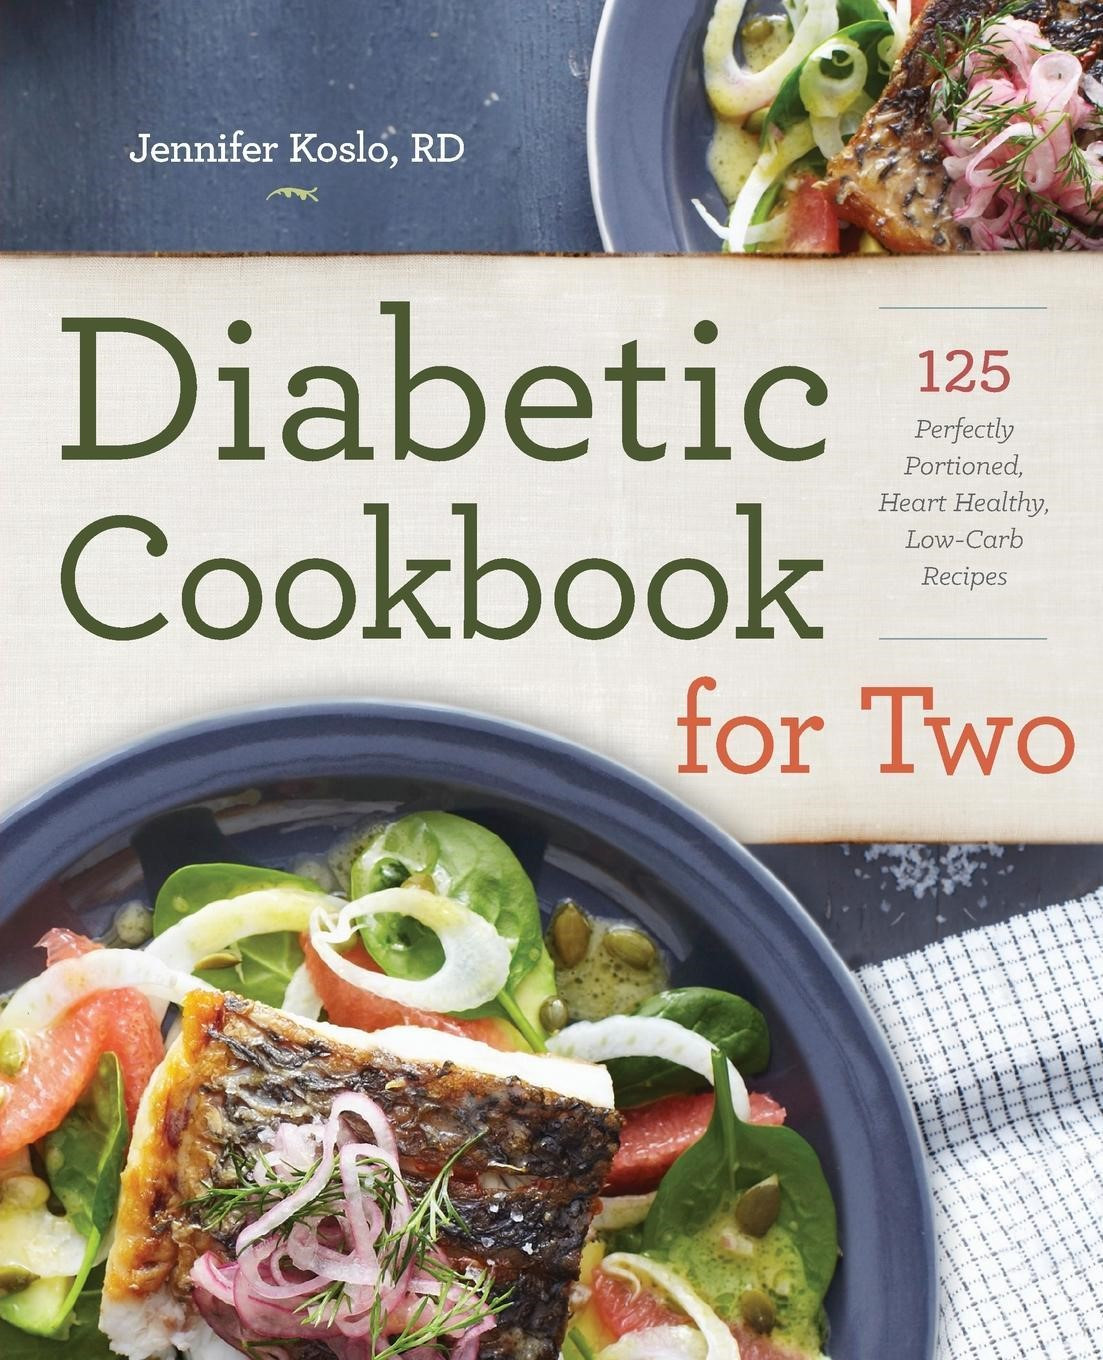 Heart Healthy Diabetic Recipes  Diabetic Cookbook for Two 125 Perfectly Portioned Heart